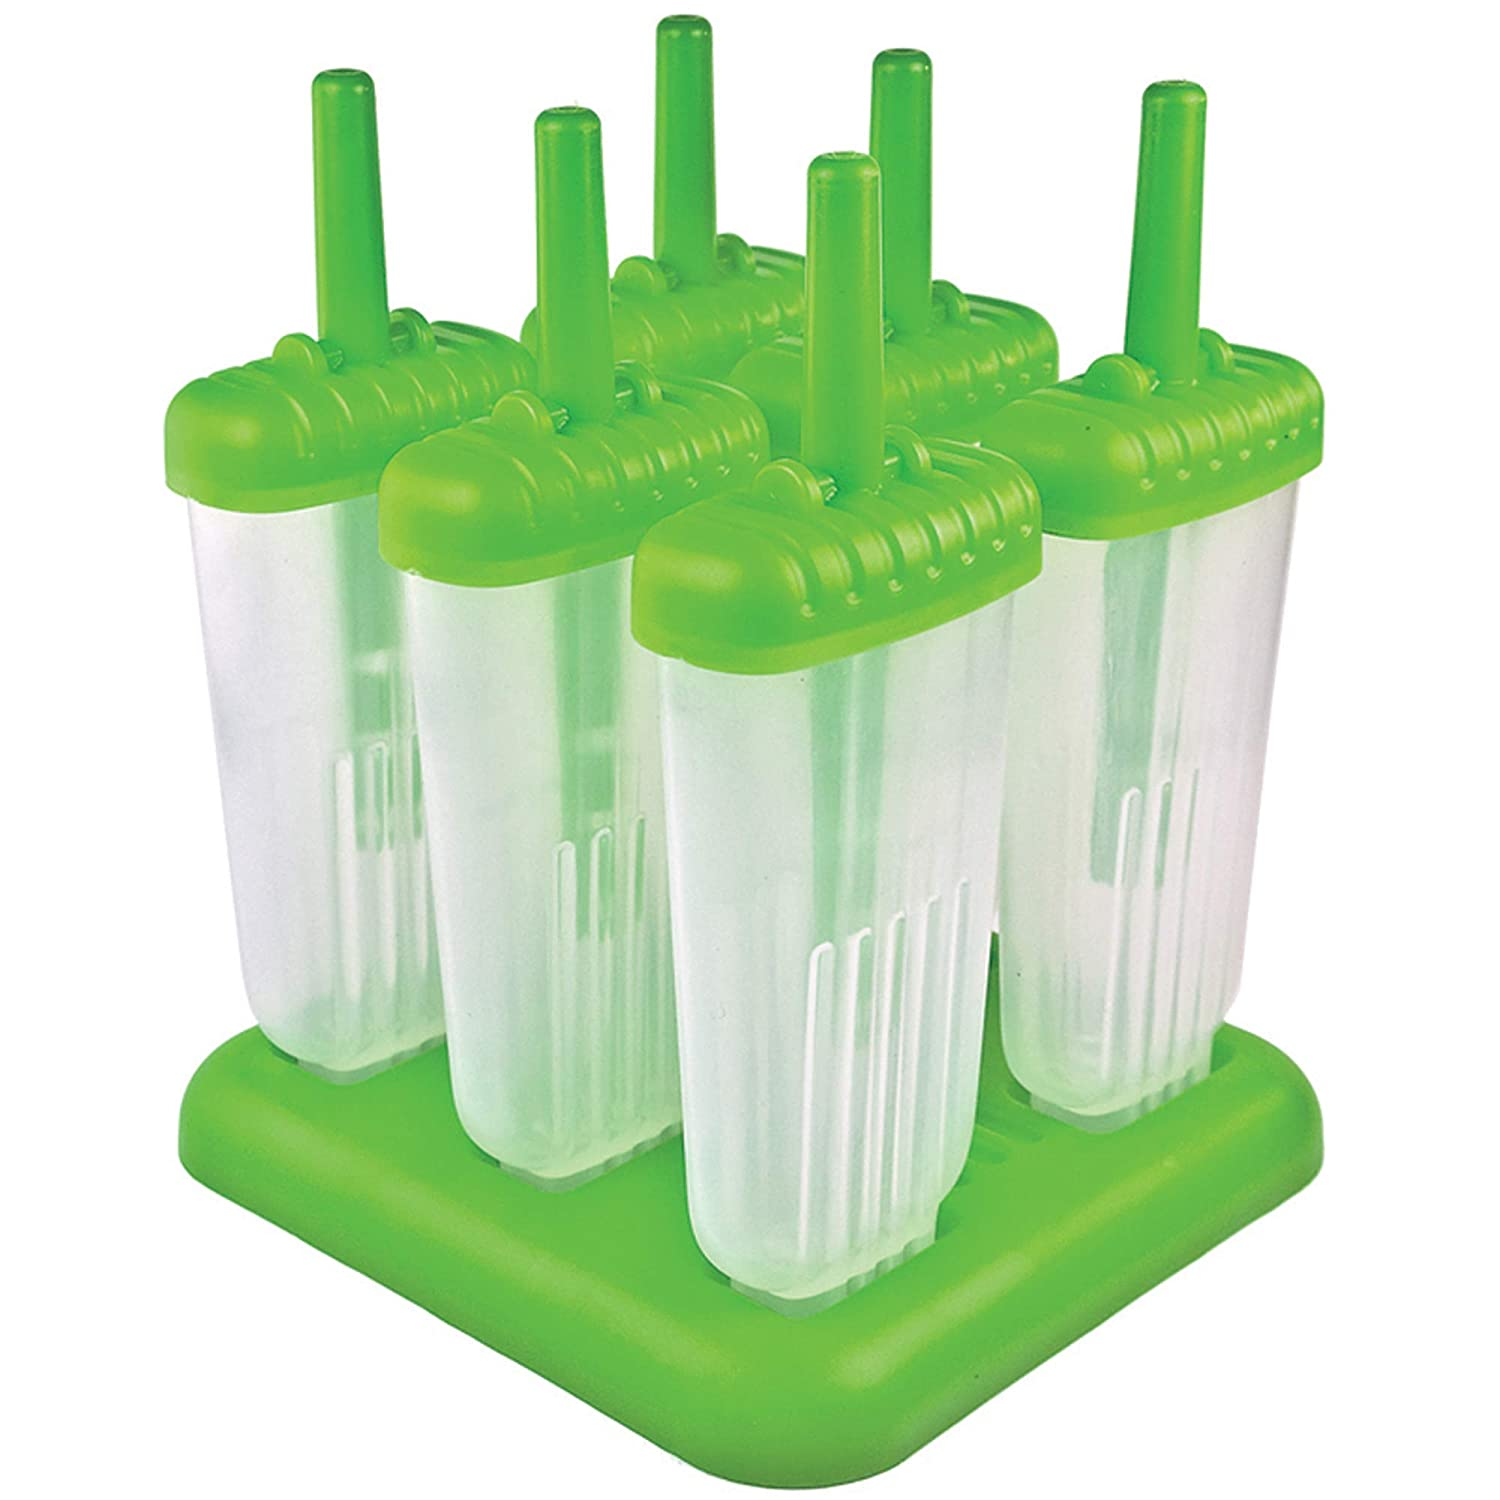 Tovolo Groovy Pop Molds - Green